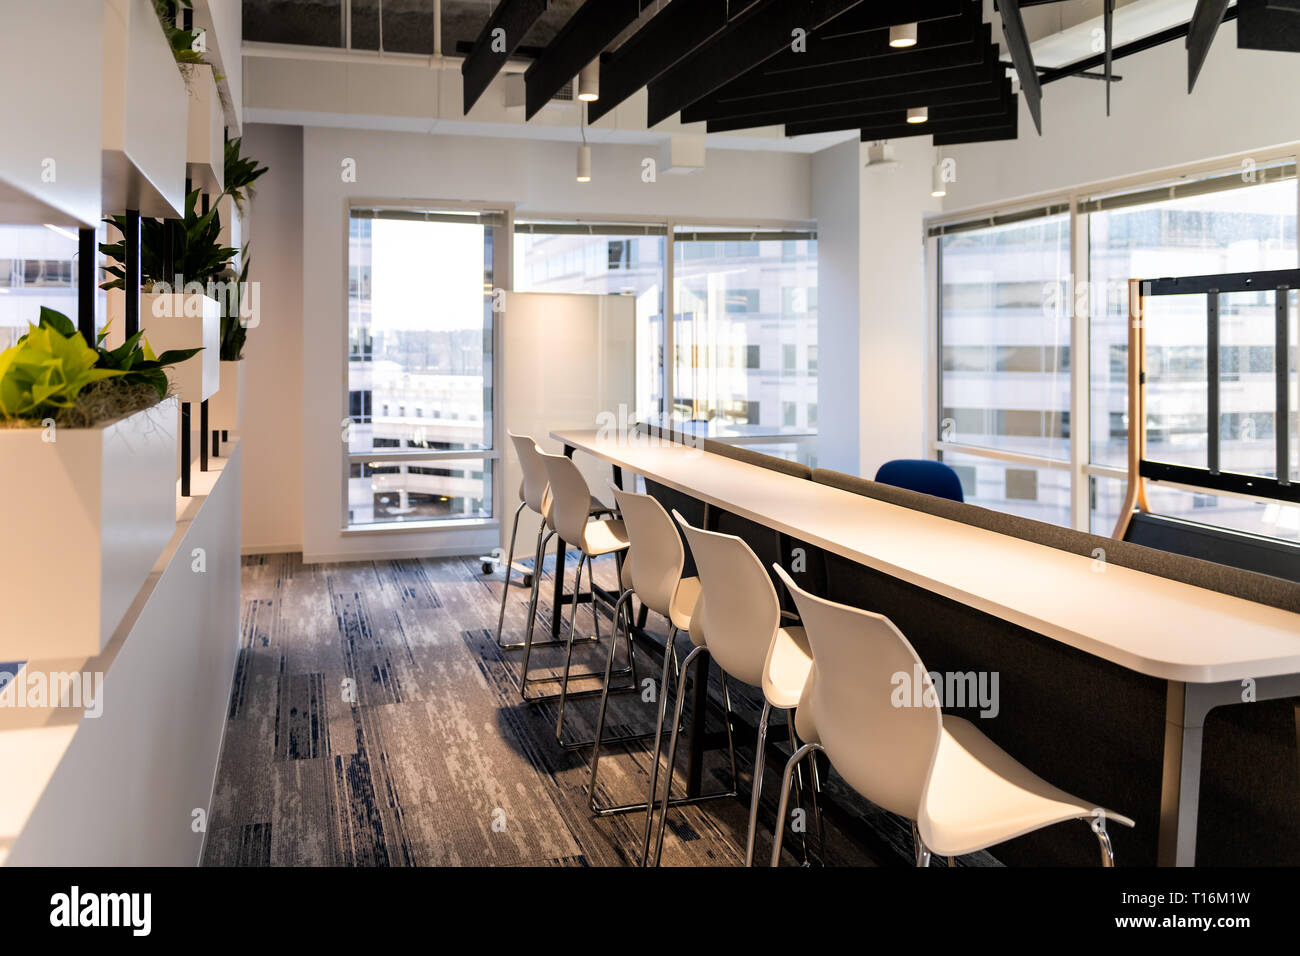 Modern empty office room kitchen bar in building with corporate business table by glass window and presentation screen projector many row chairs nobod - Stock Image